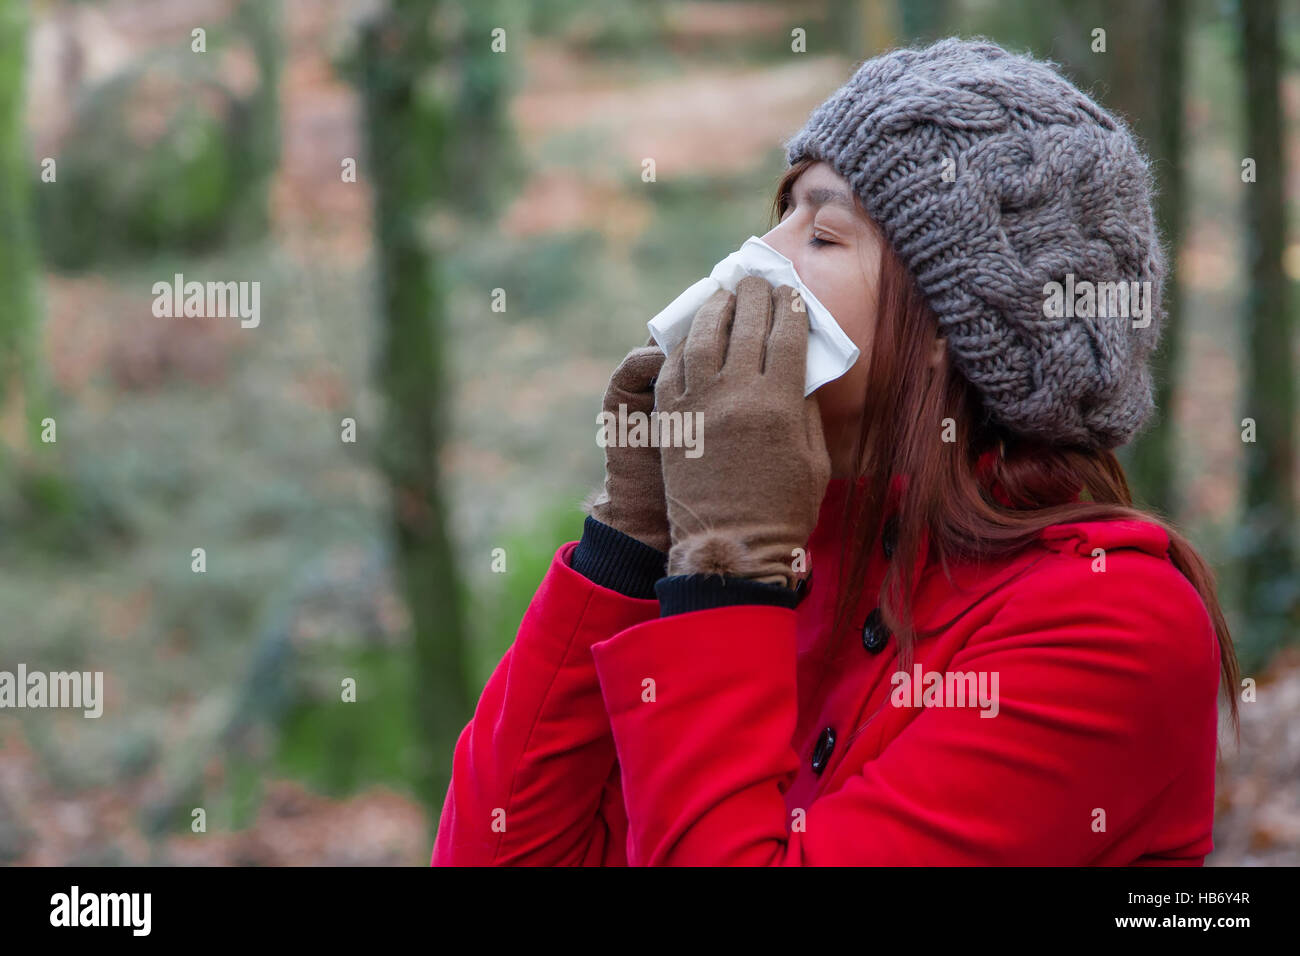 Young woman suffering from a cold, flu or allergies blowing her nose on a white paper handkerchief during winter - Stock Image